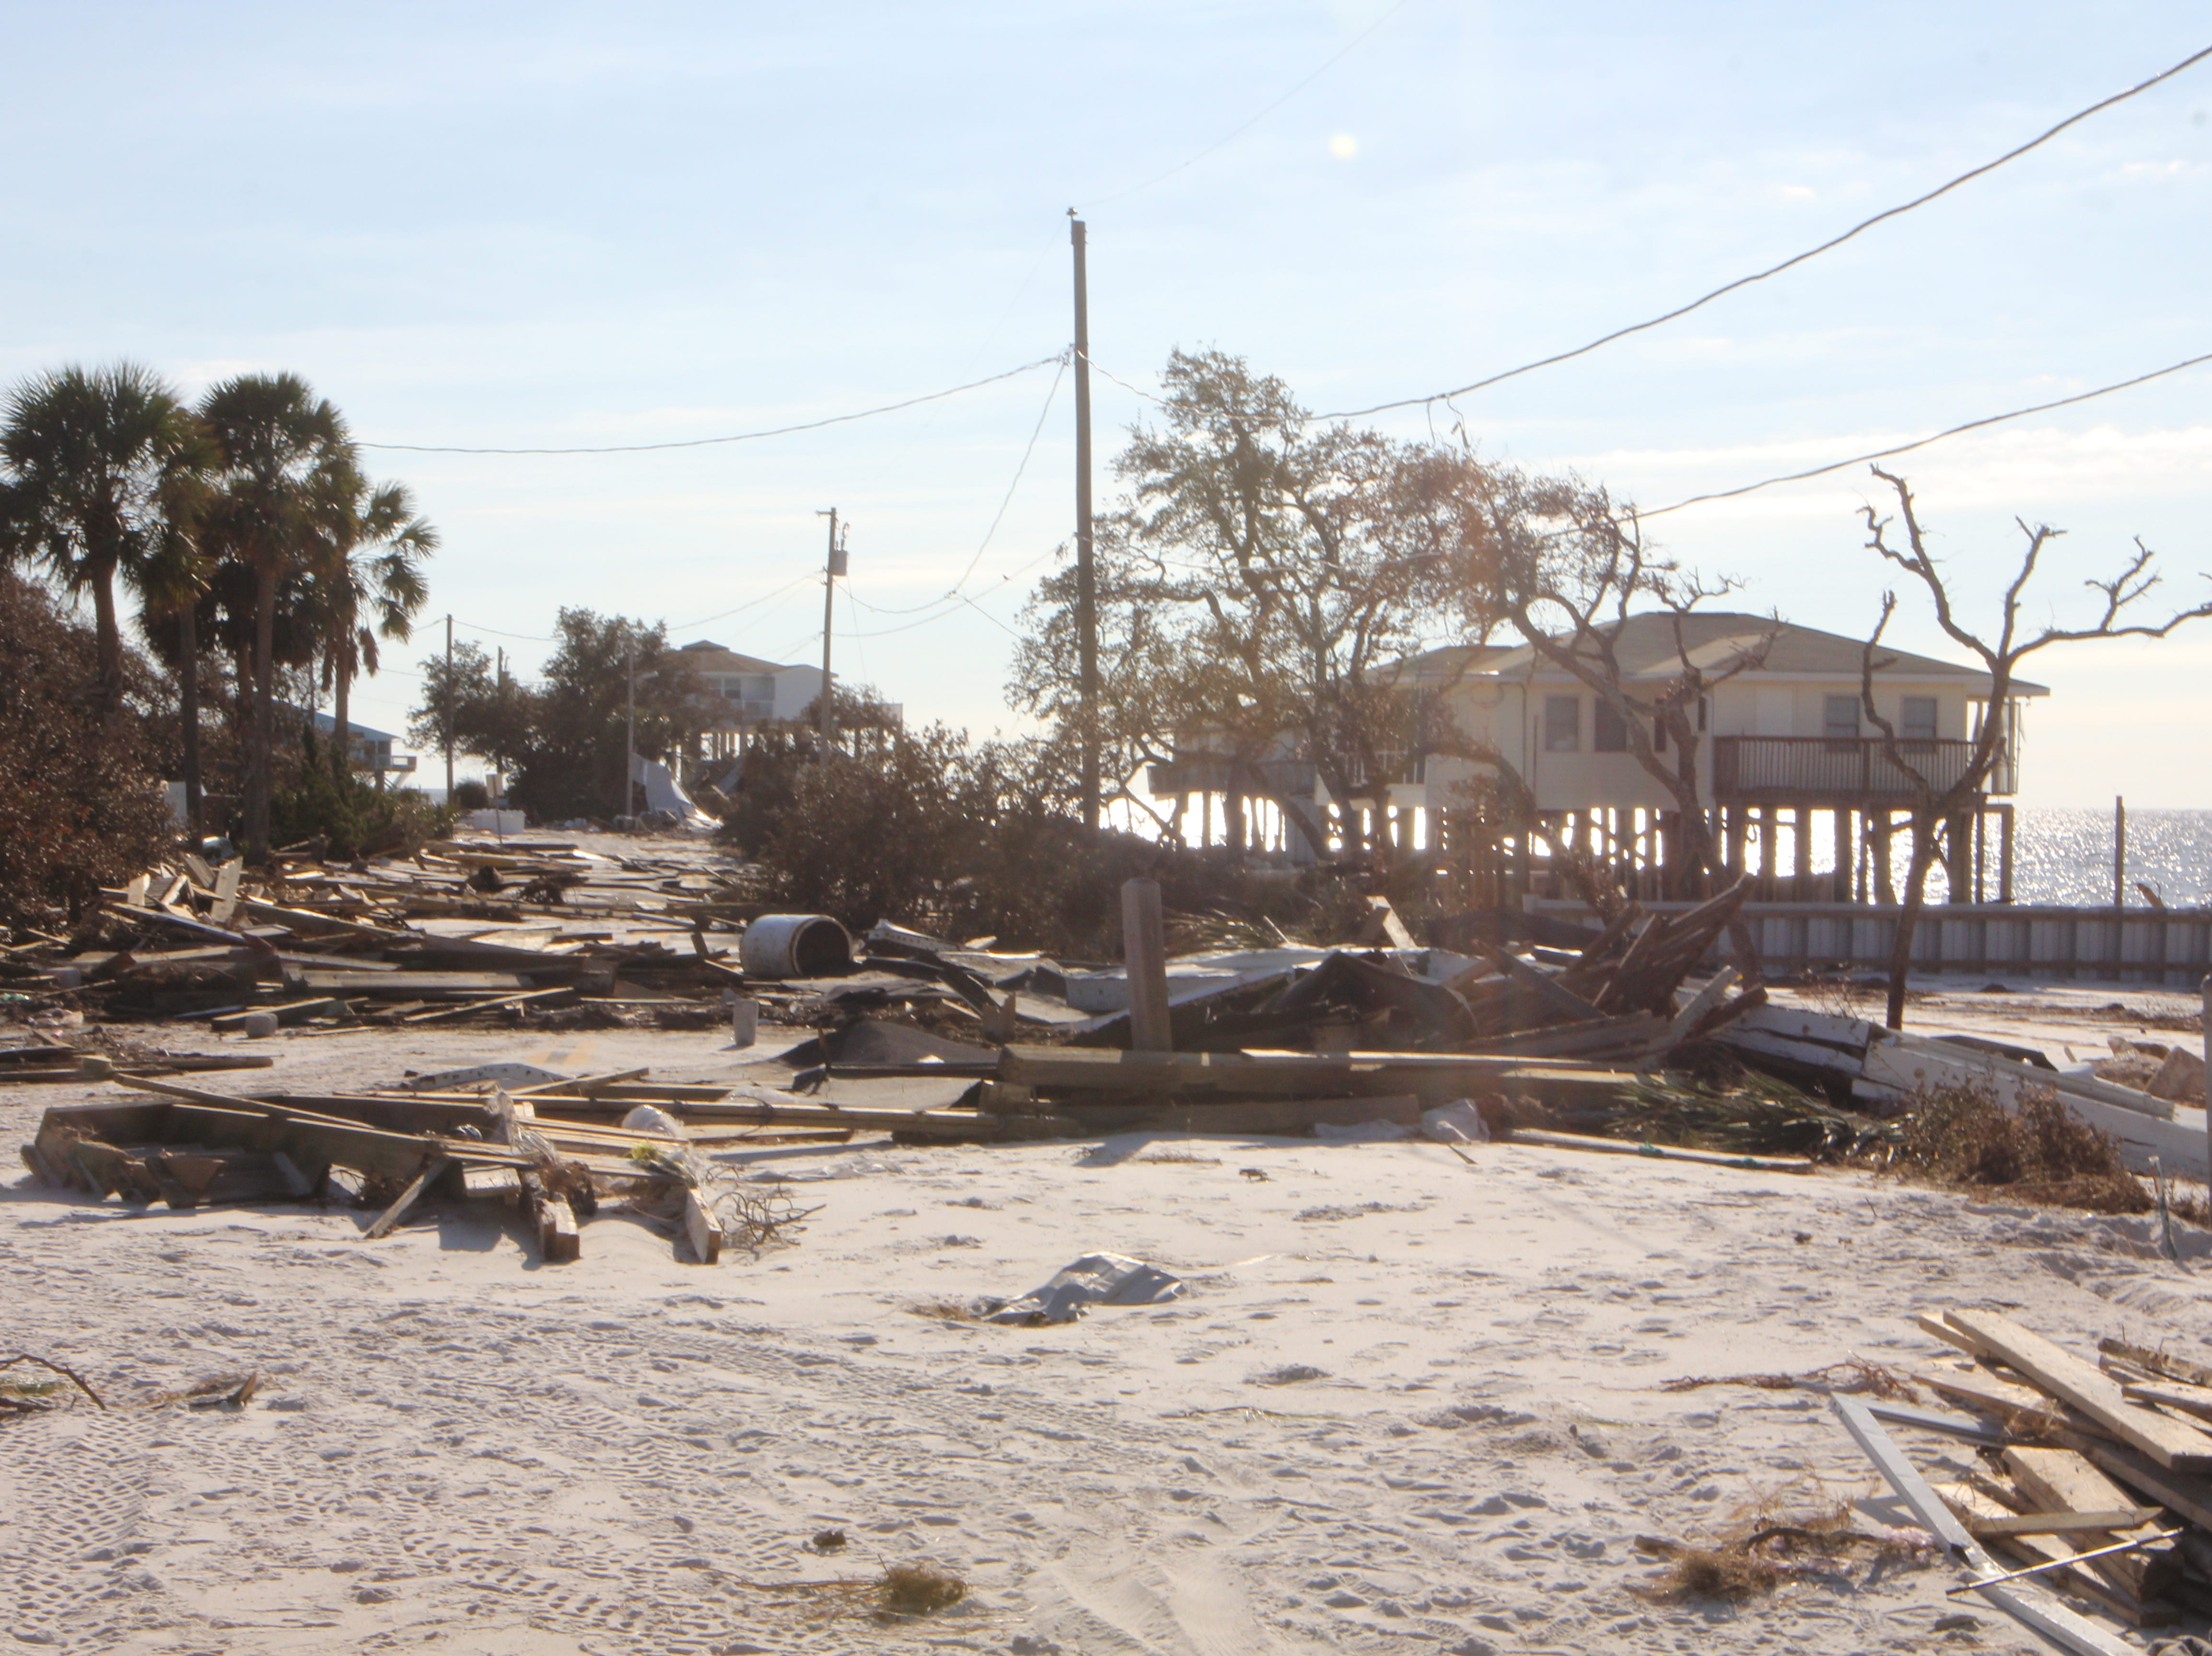 Houses sit in ruins on Alligator Point after Hurricane Michael.